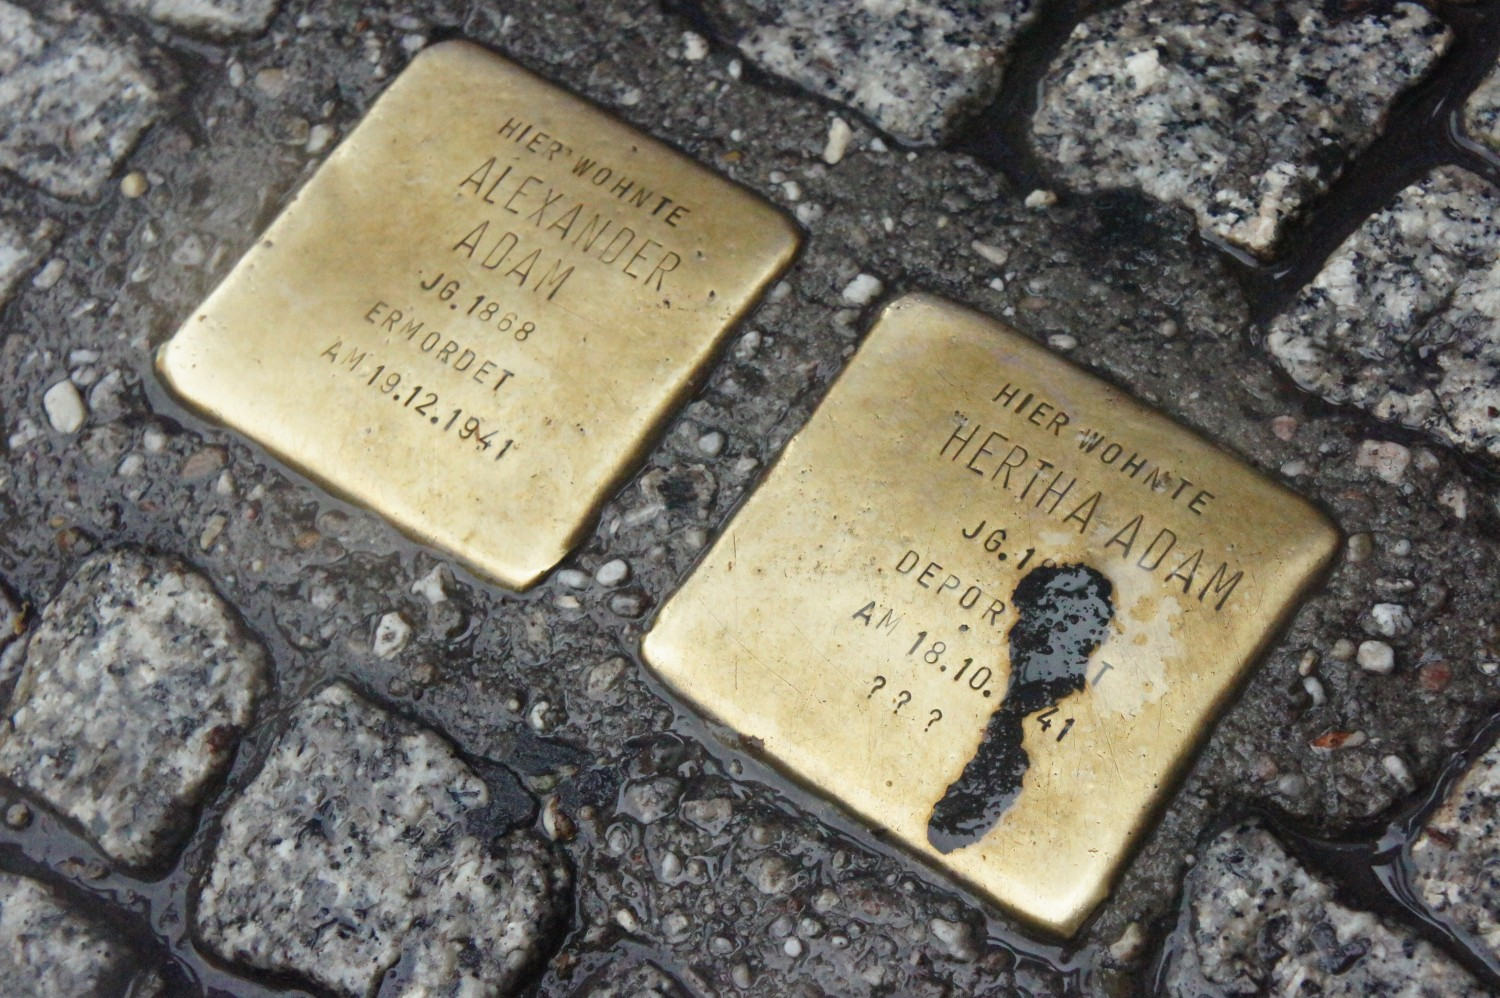 Dashing, head down, through a thunderstorm, I saw these: plaques marking the homes of Jewish residents who were either killed or taken to extermination camps.